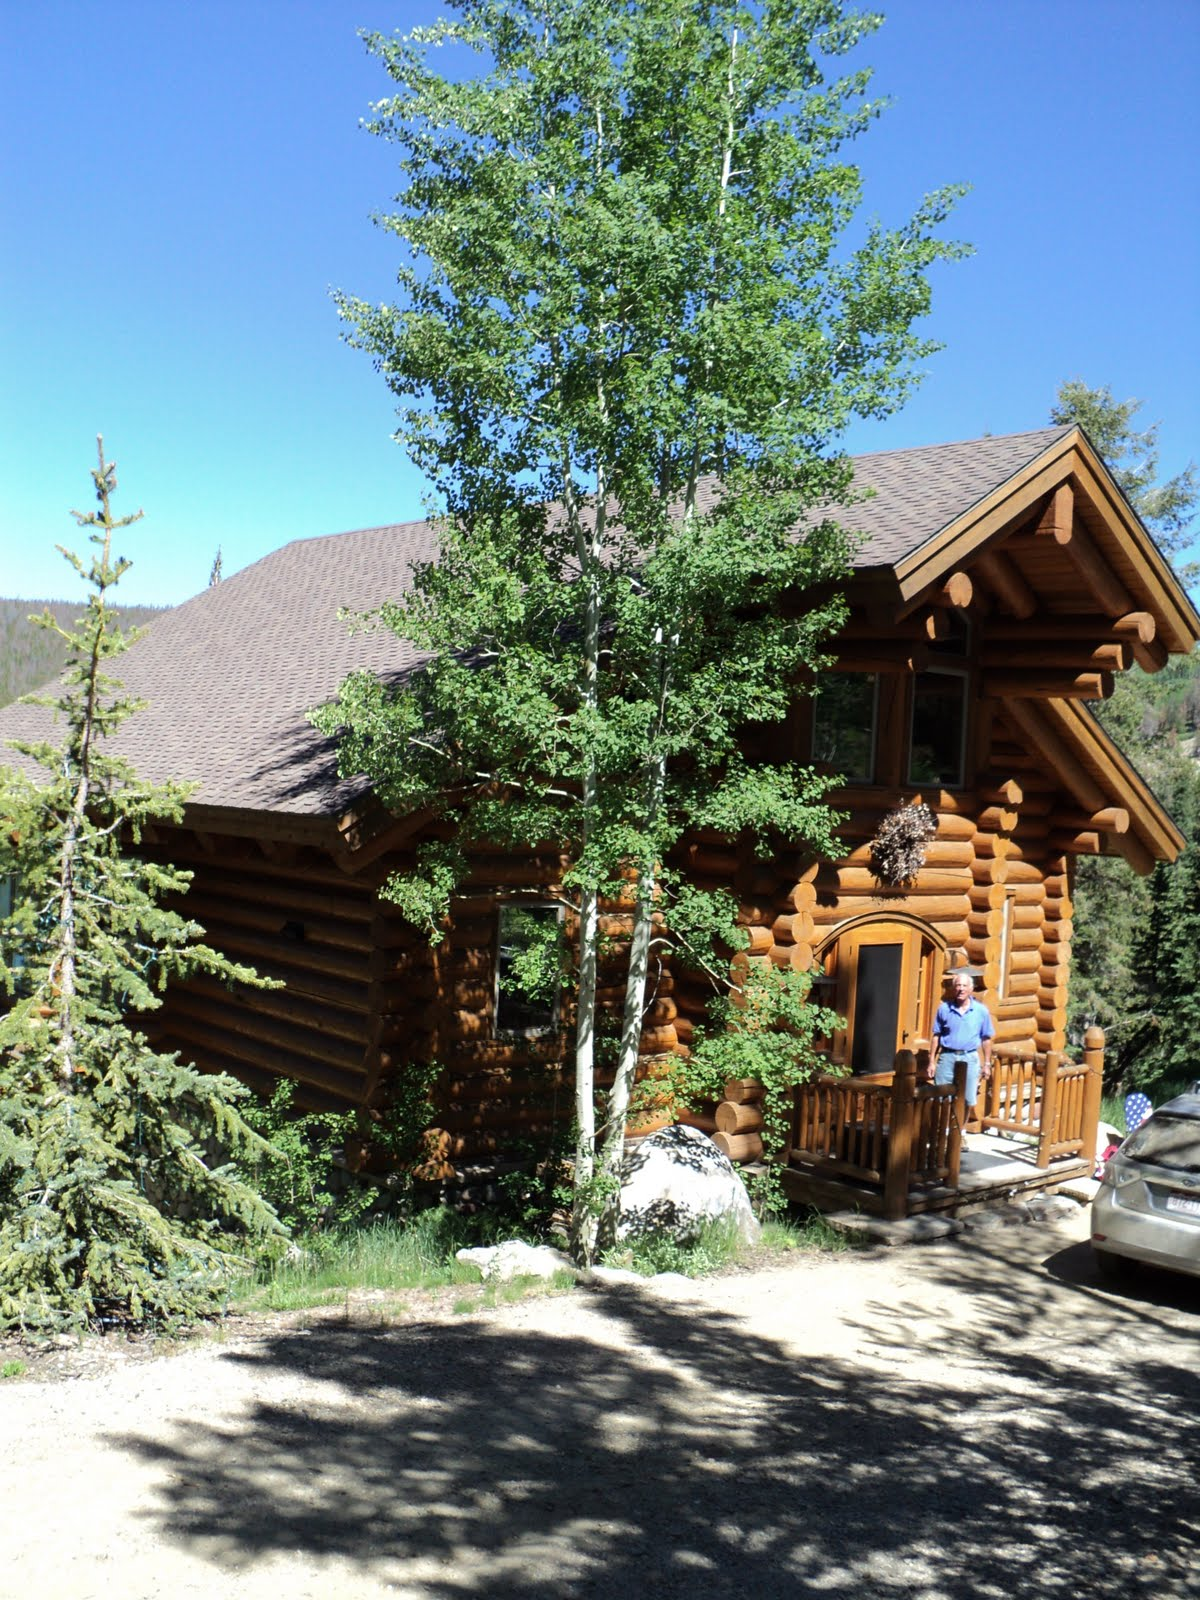 Peg and tom 39 s excellent adventure in steamboat lake agnes for Steamboat lake cabins